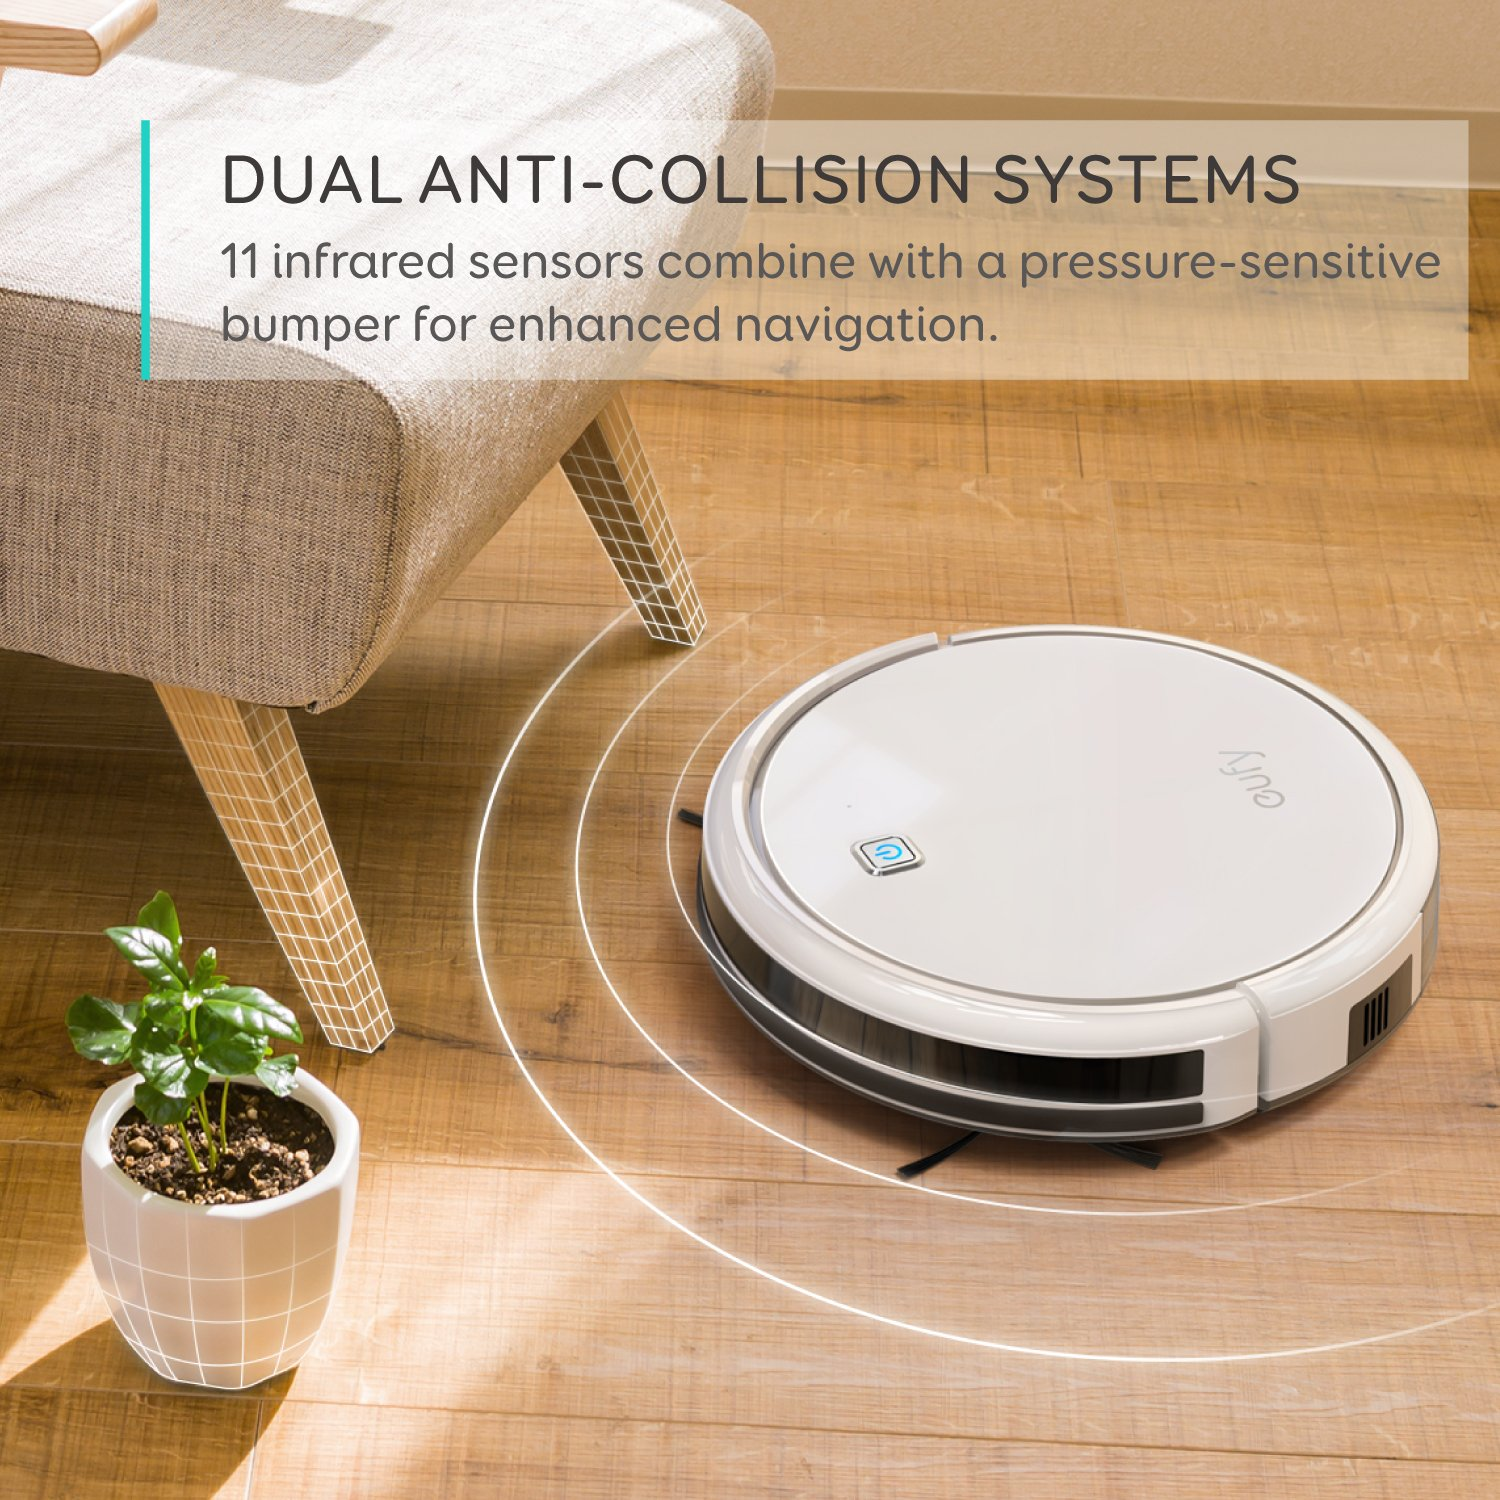 Eufy RoboVac 11, High Suction, Self-Charging Robotic Vacuum Cleaner with Drop-Sensing Technology and High-Performance Filter for Pet, Designed for Hard Floor and Thin Carpet